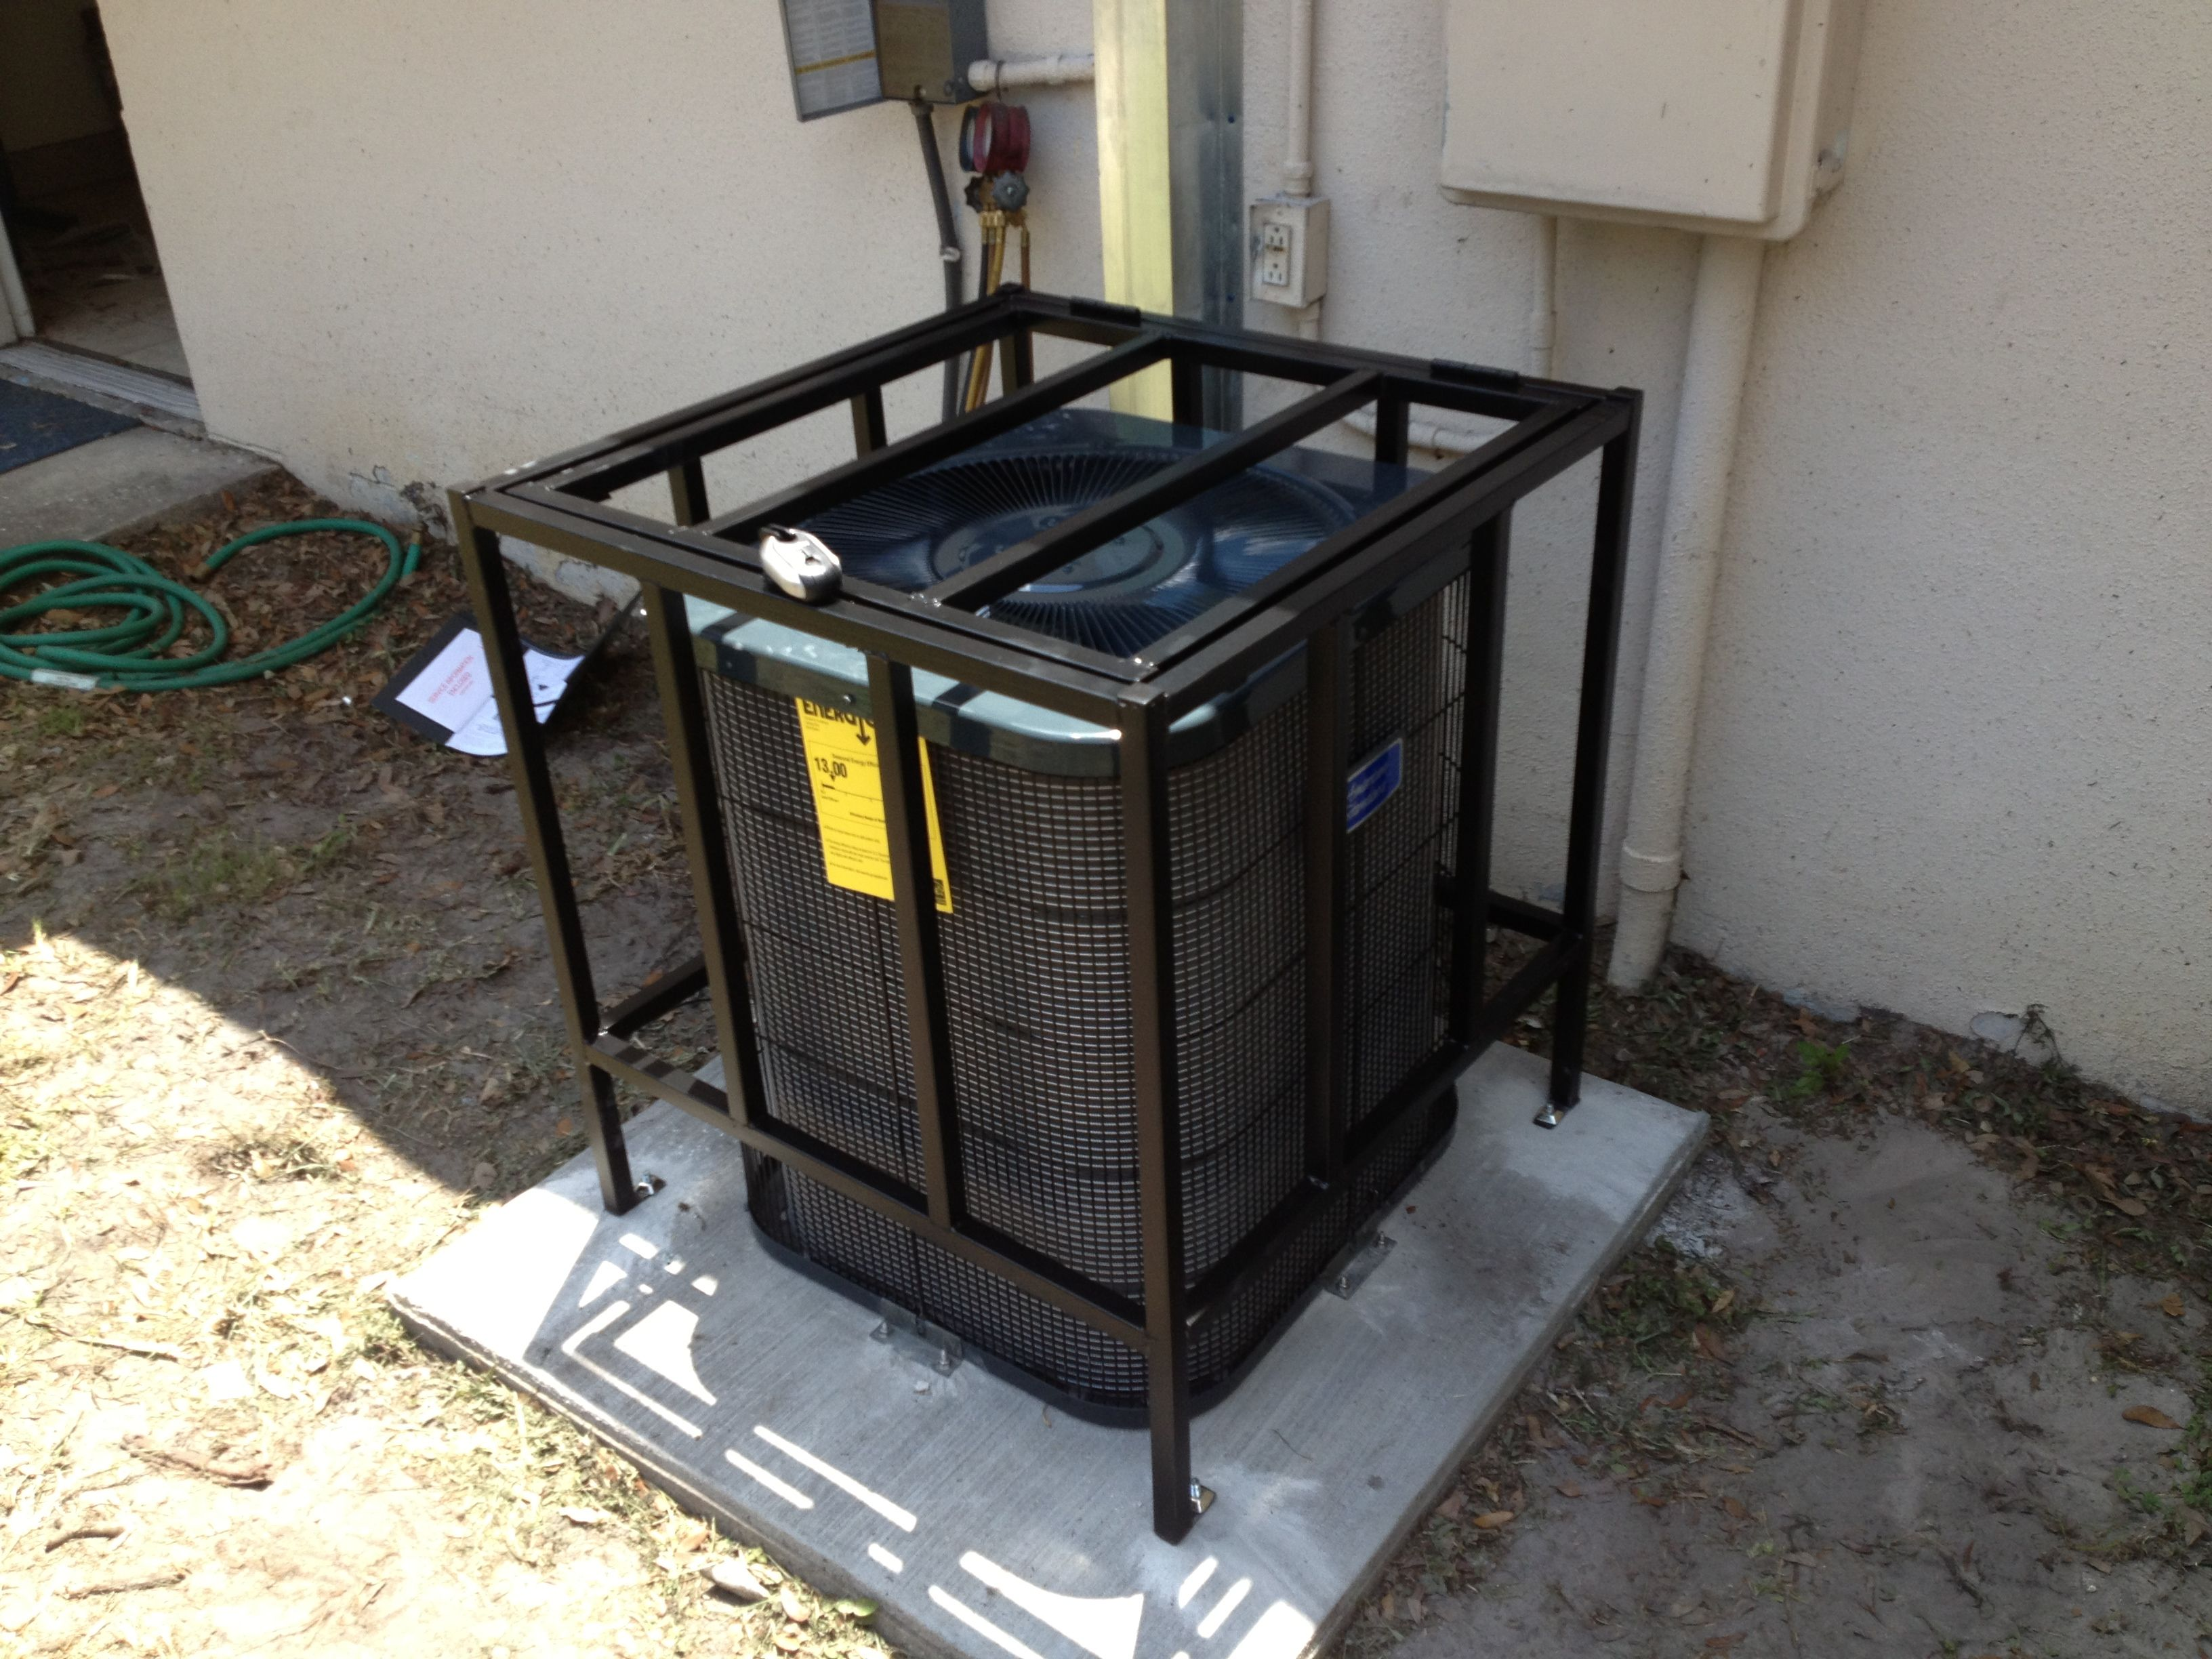 We Now Offer A Complete Line Of Air Conditioner Cages Designed To Fit Any Budget And Any Level Of Security Here Is Our Sta Home Security Cage Projects To Try